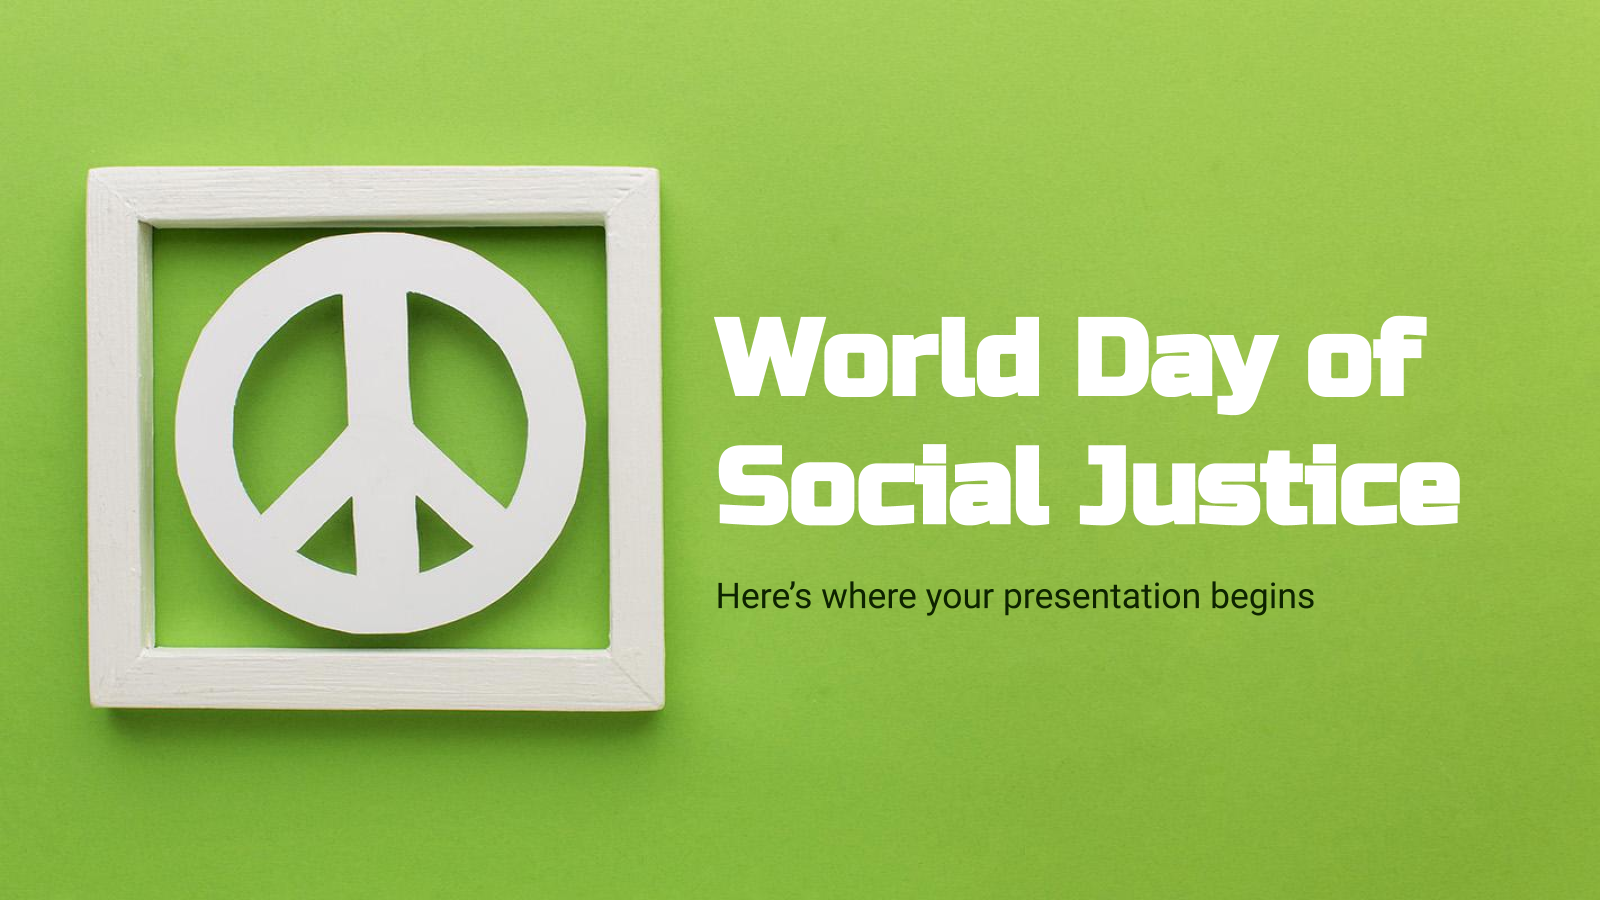 World Day of Social Justice presentation template